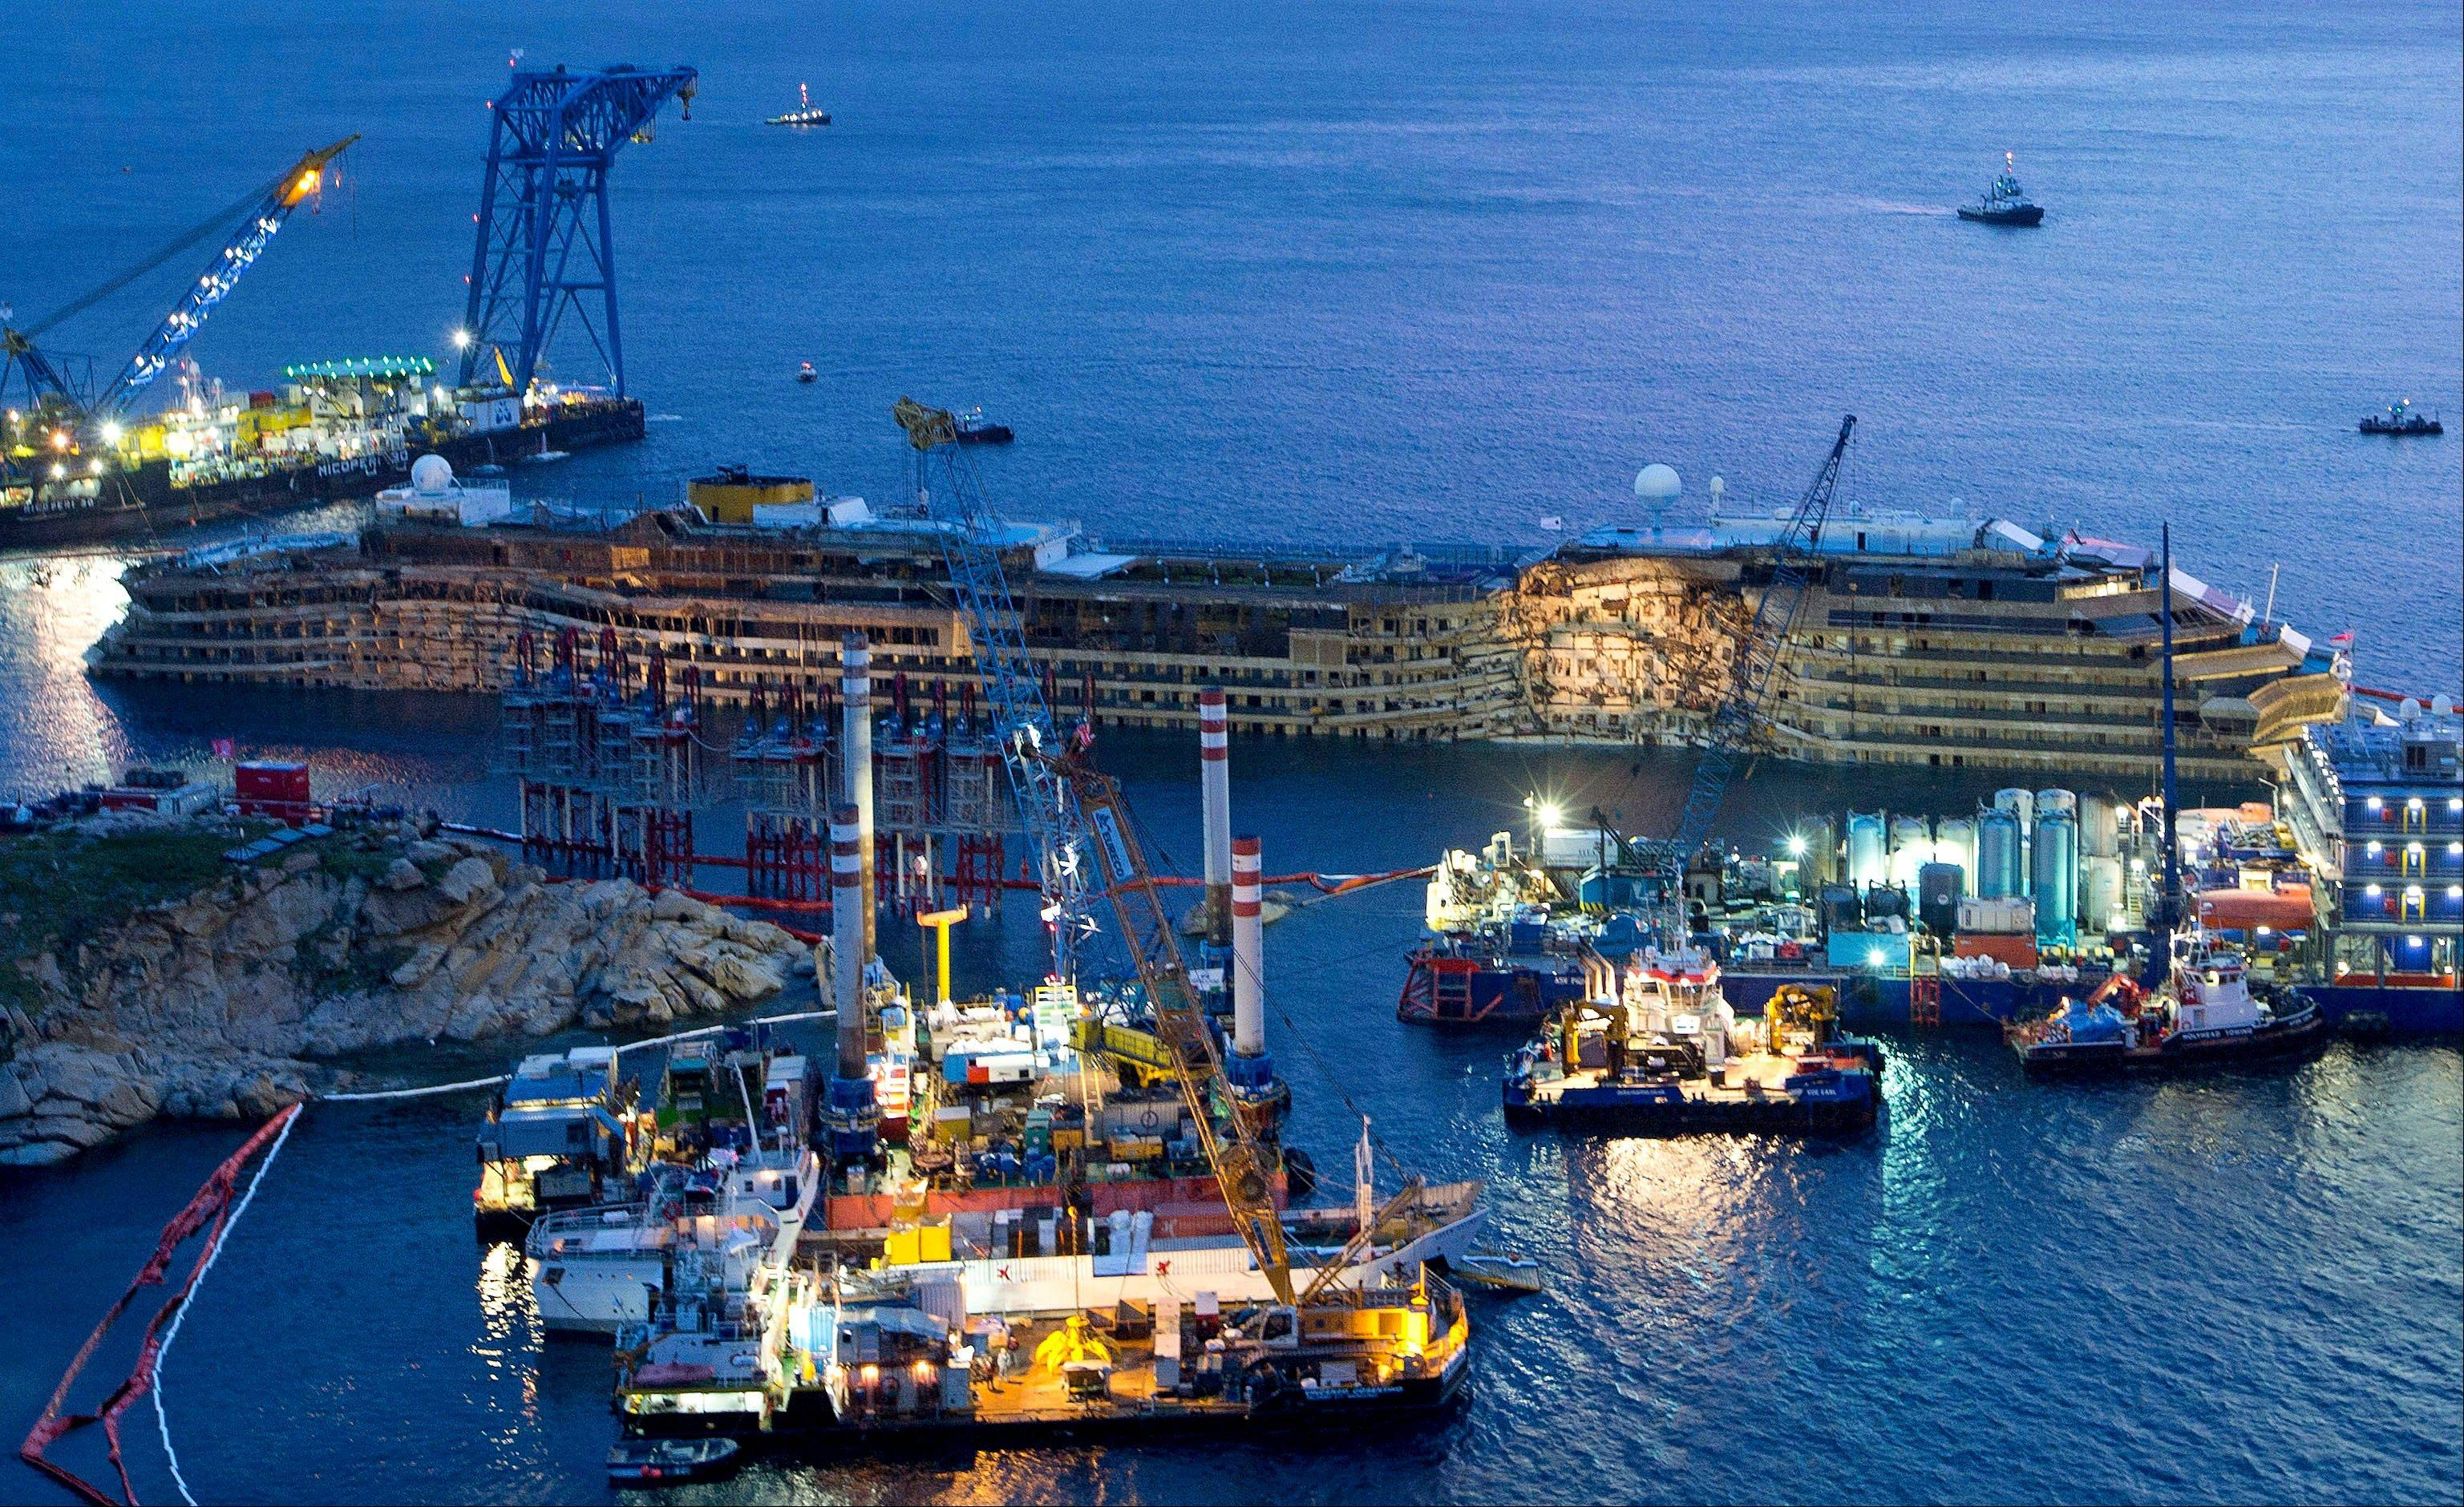 "The Costa Concordia is seen after it was lifted upright, on the Tuscan Island of Giglio, Italy, early Tuesday morning, Sept. 17, 2013. The crippled cruise ship was pulled completely upright early Tuesday after a complicated, 19-hour operation to wrench it from its side where it capsized last year off Tuscany, with officials declaring it a ""perfect"" end to a daring and unprecedented engineering feat."